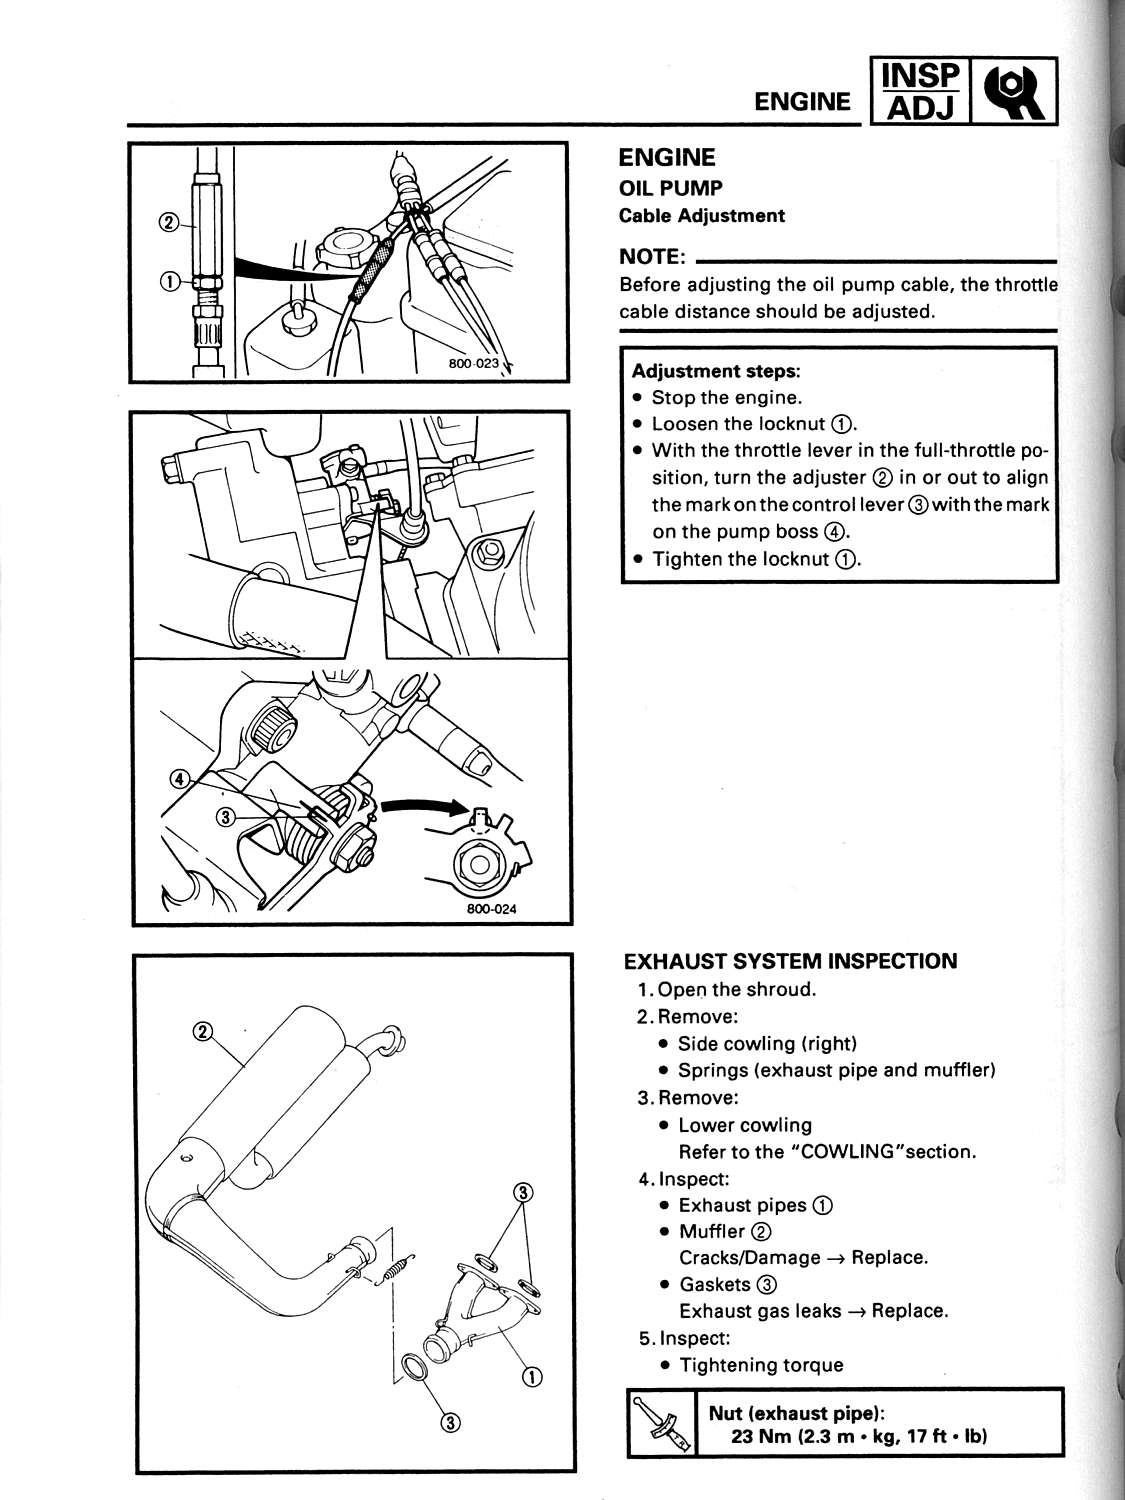 carburetor diagram for 1997 yamaha vmax 600  carburetor